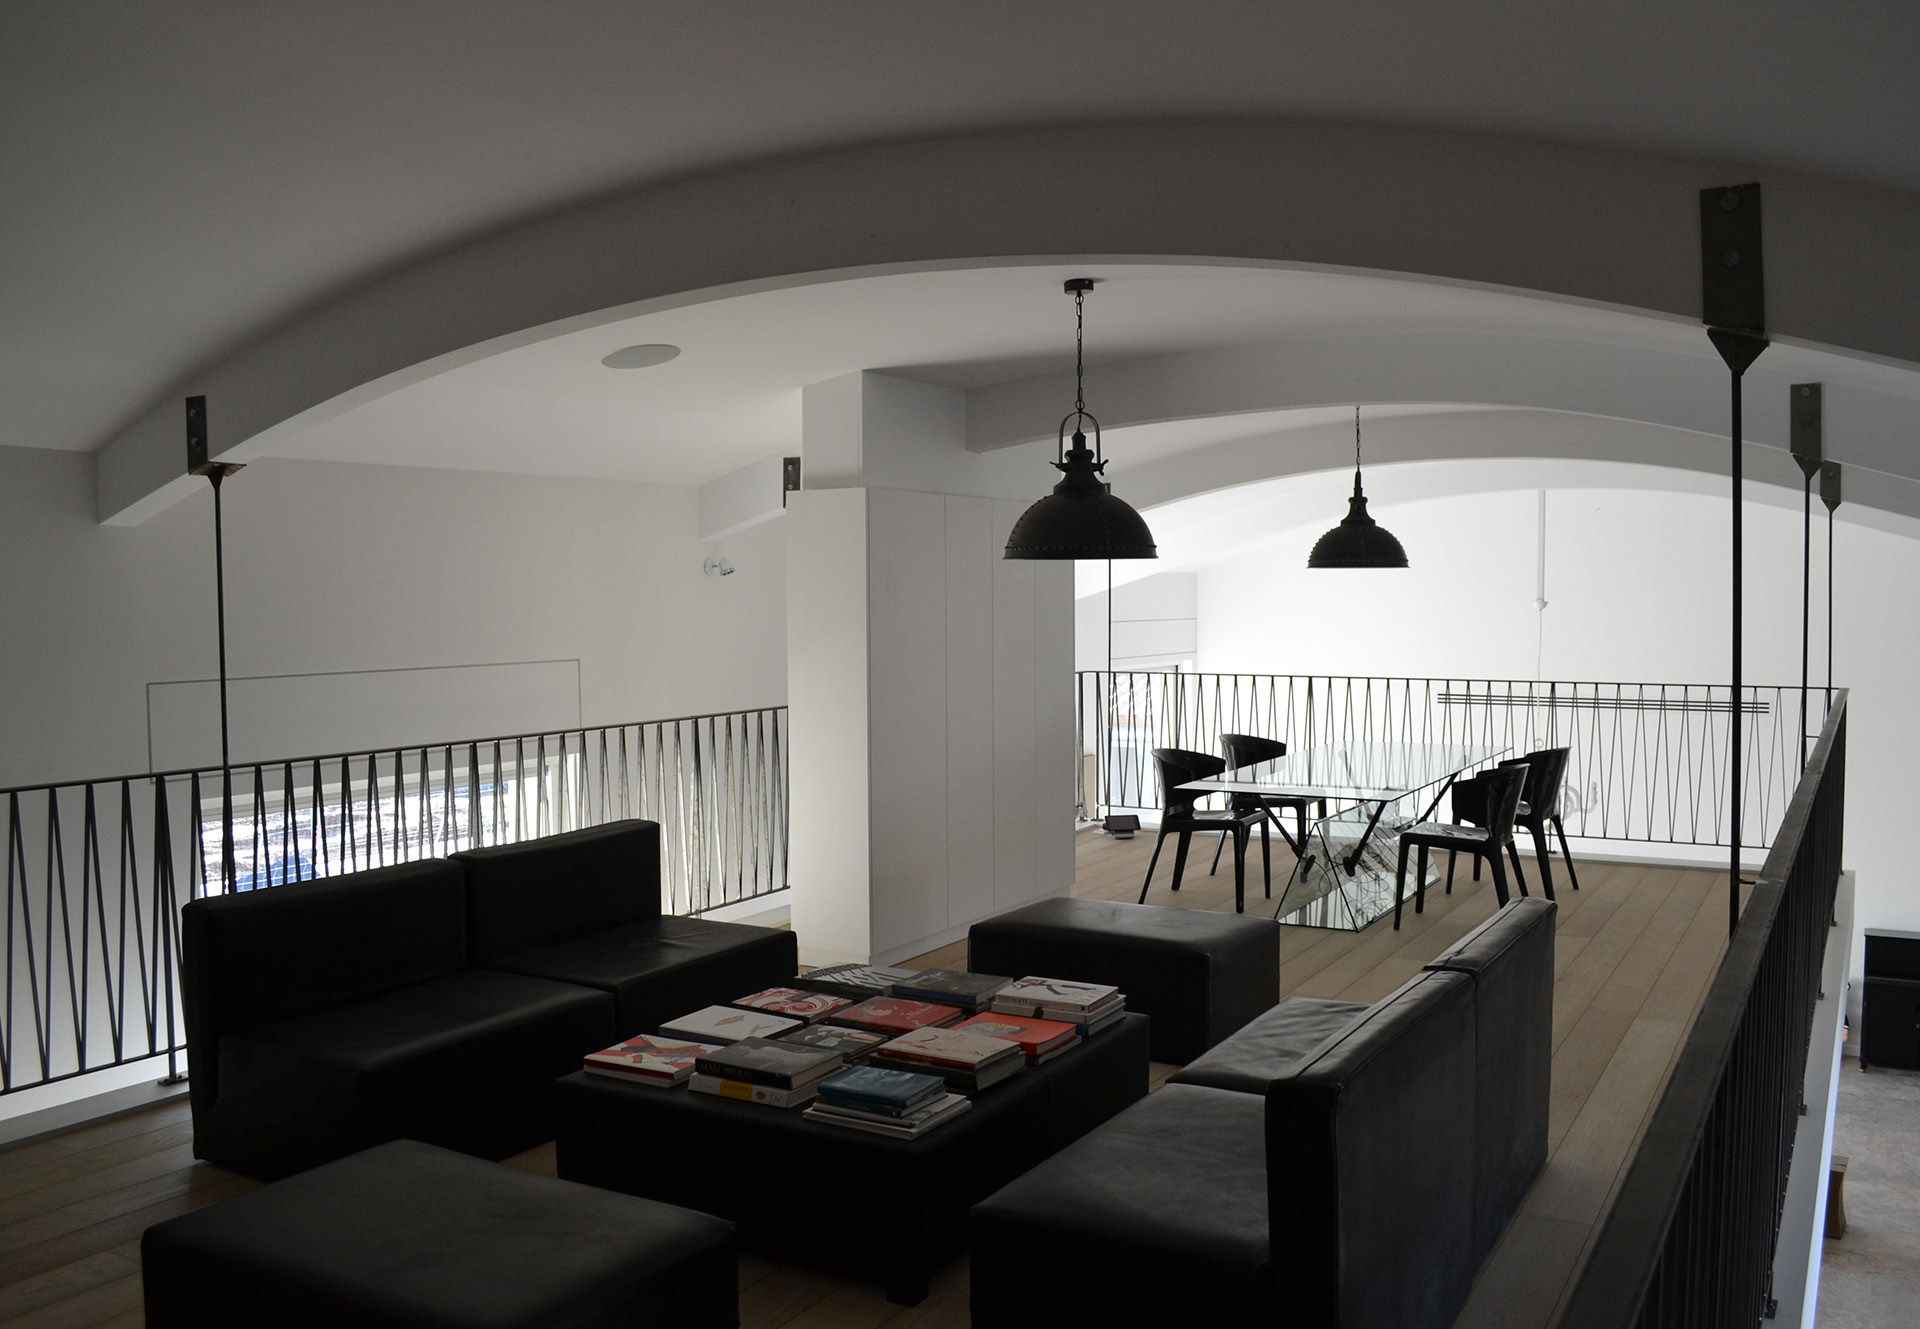 Appartement Transformation Architecte-Nice Cannes Monaco